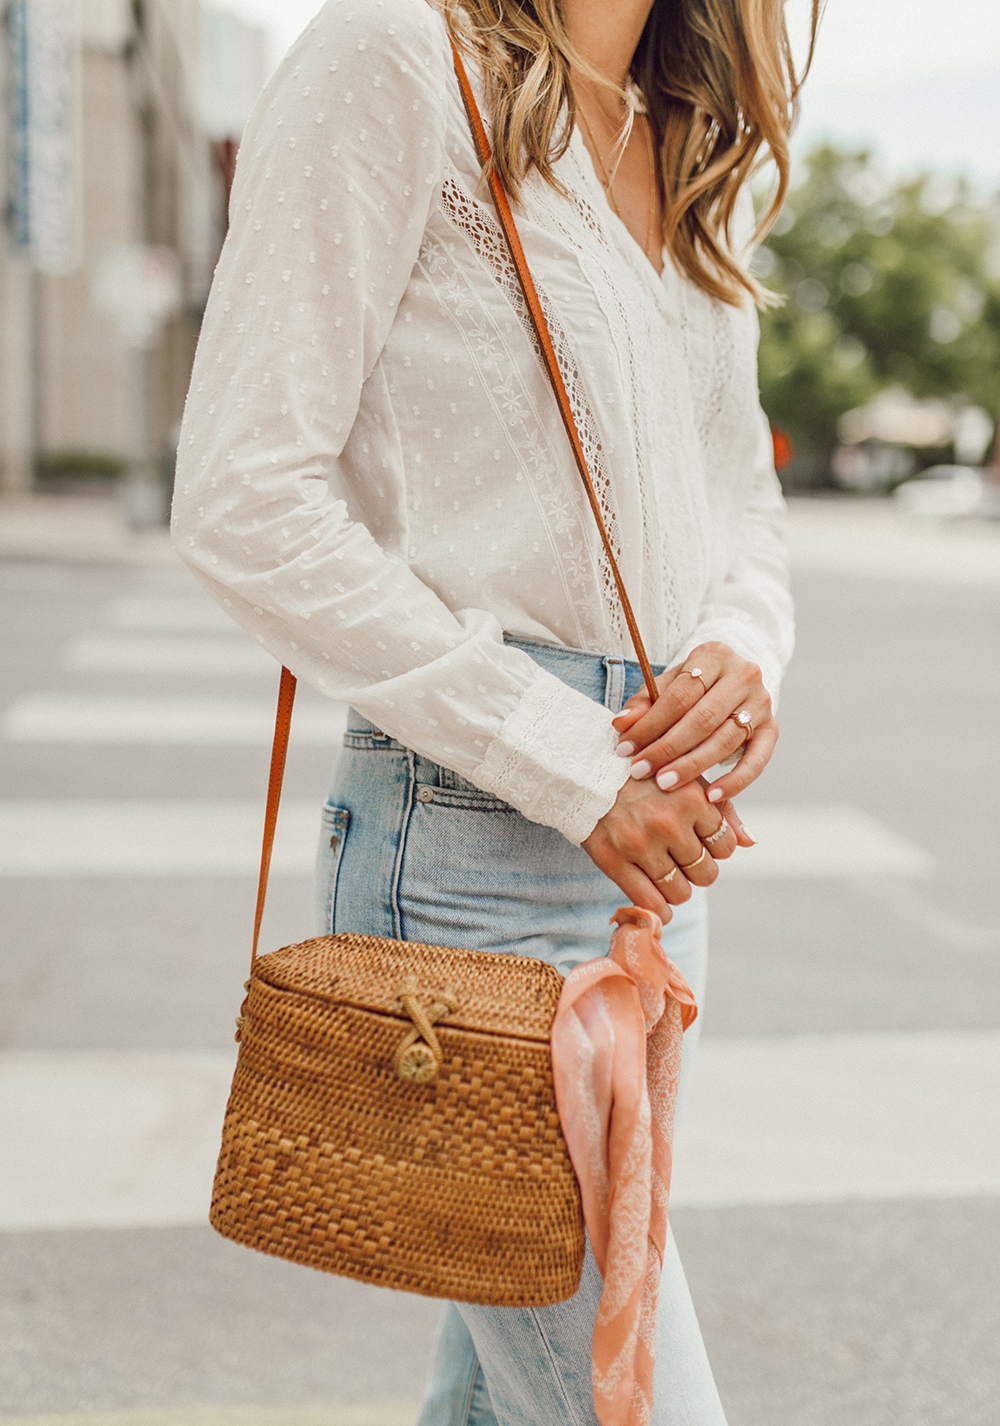 livvland-blog-olivia-watson-austin-texas-fashion-lifestyle-blogger-sezane-lace-deep-v-top-rattan-bag-madewell-summer-jeans-7